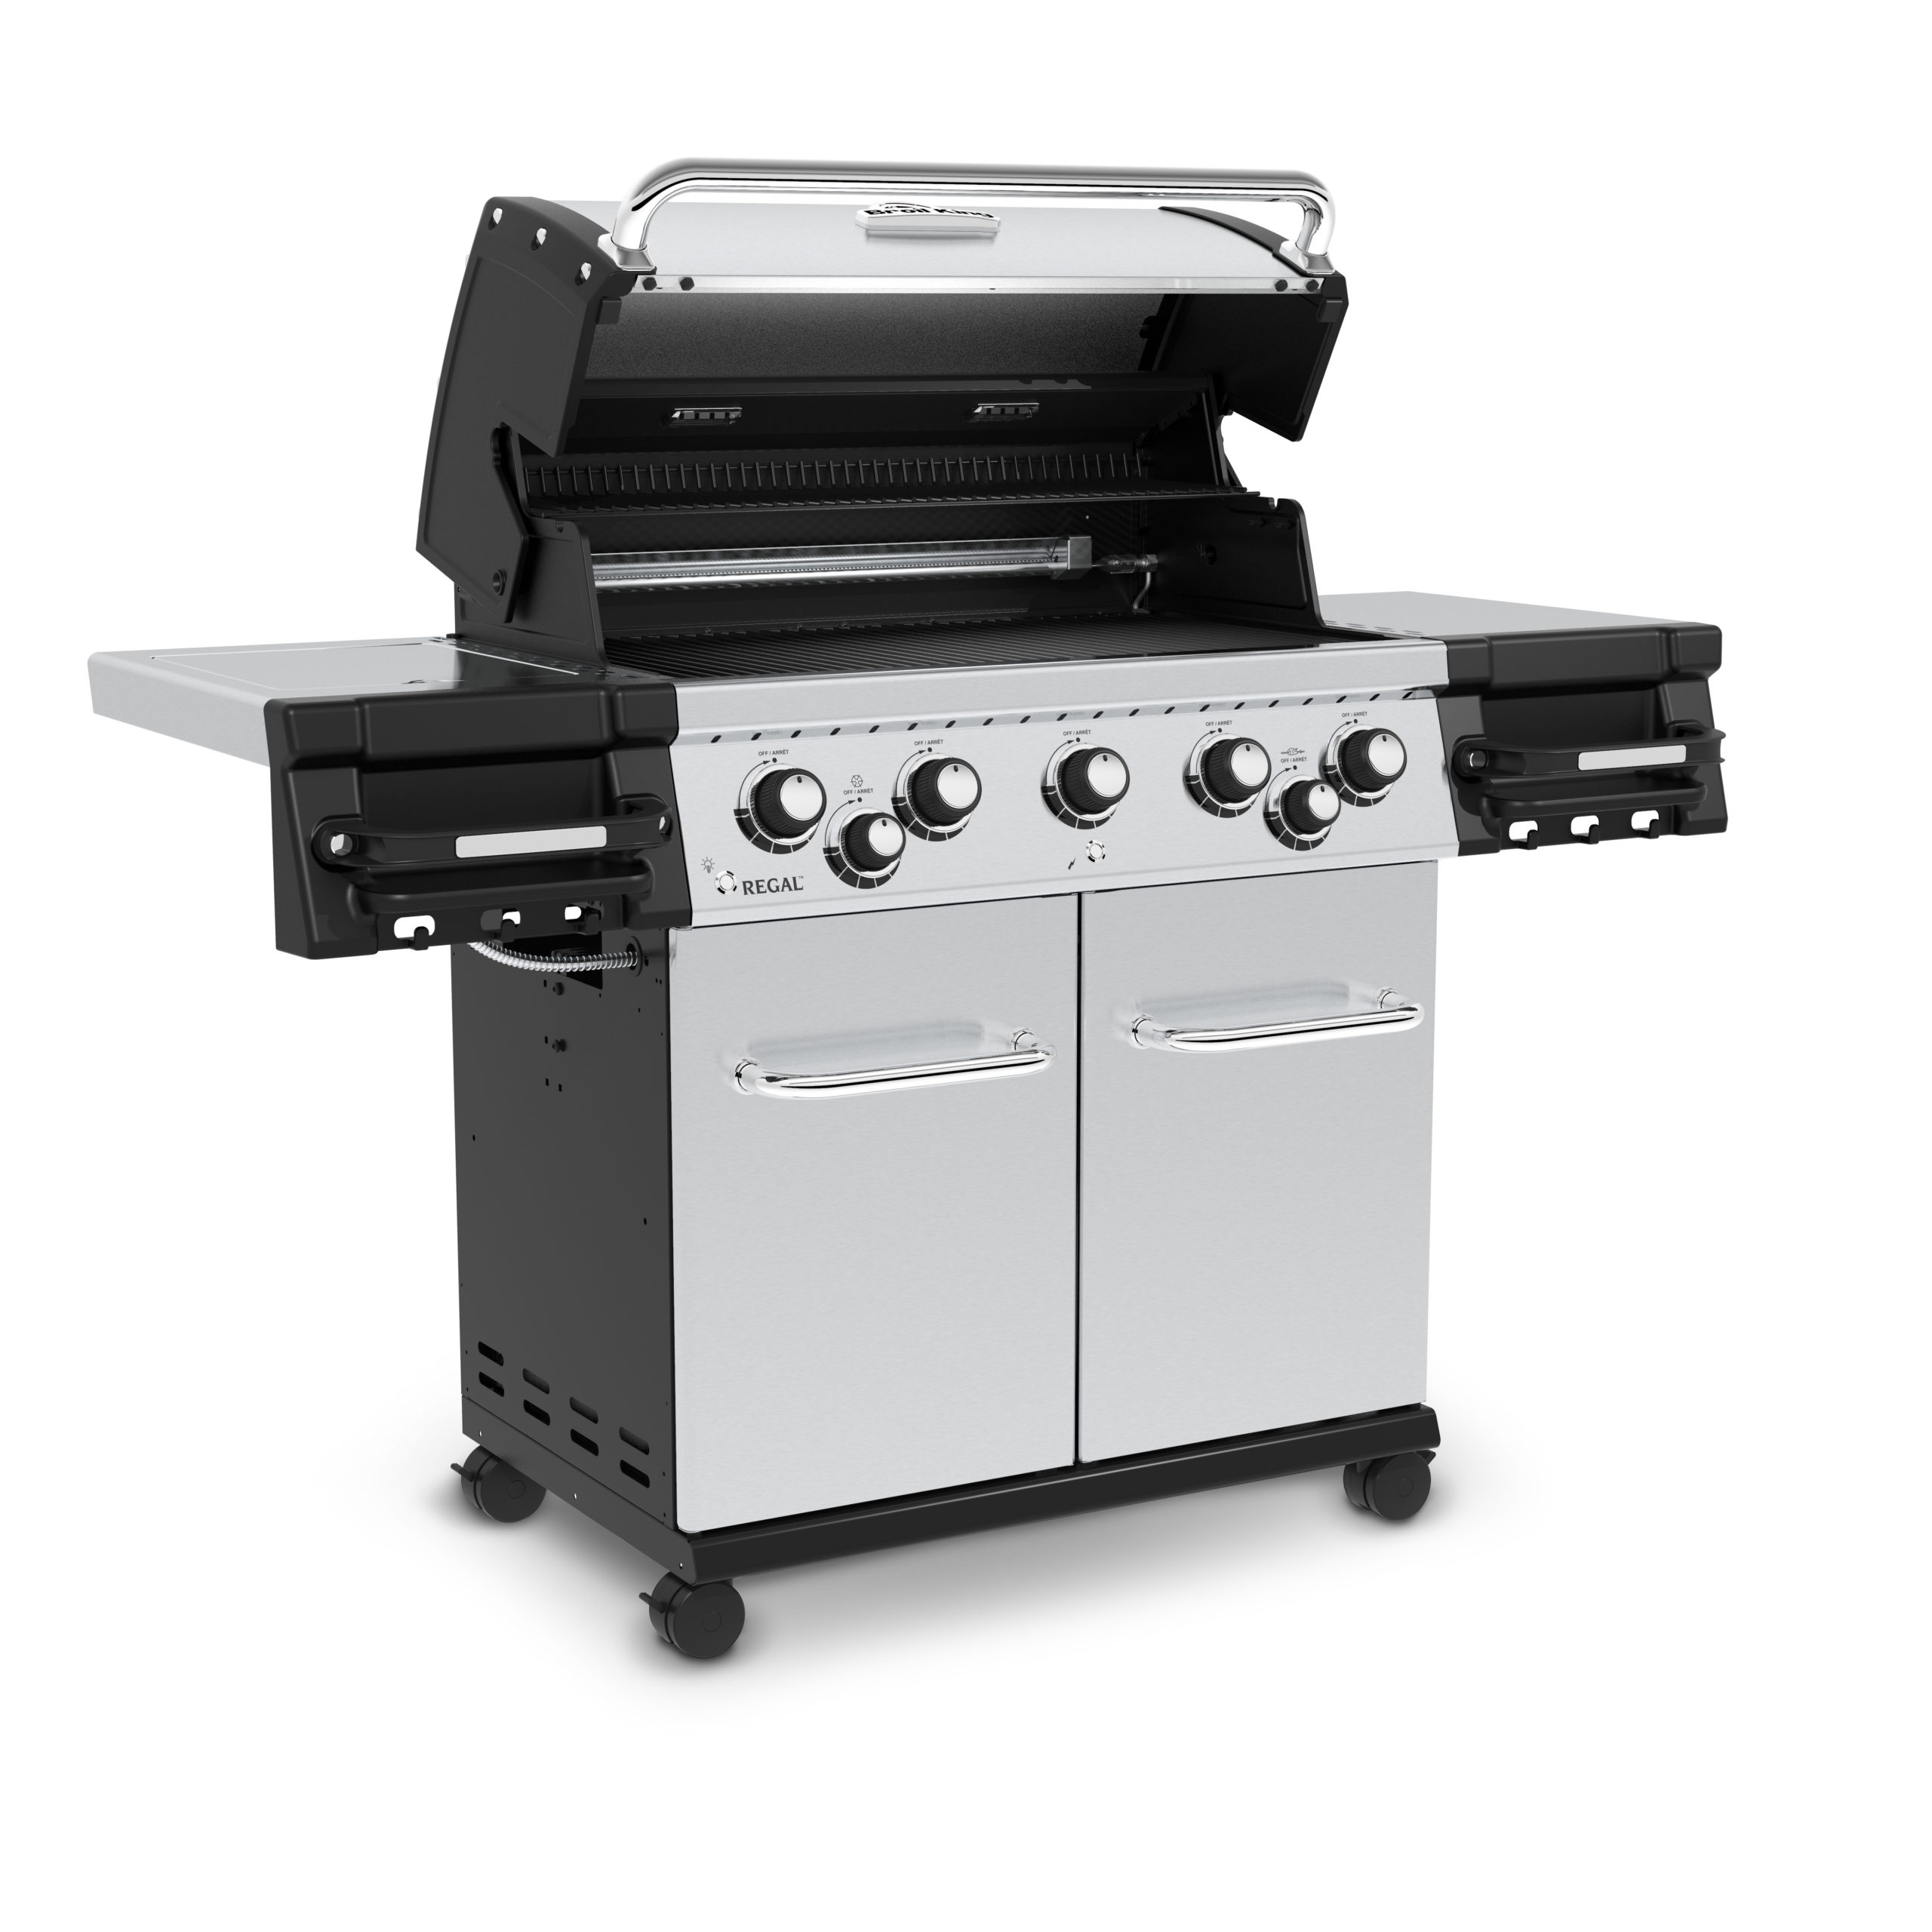 Regal S-590 Broil King